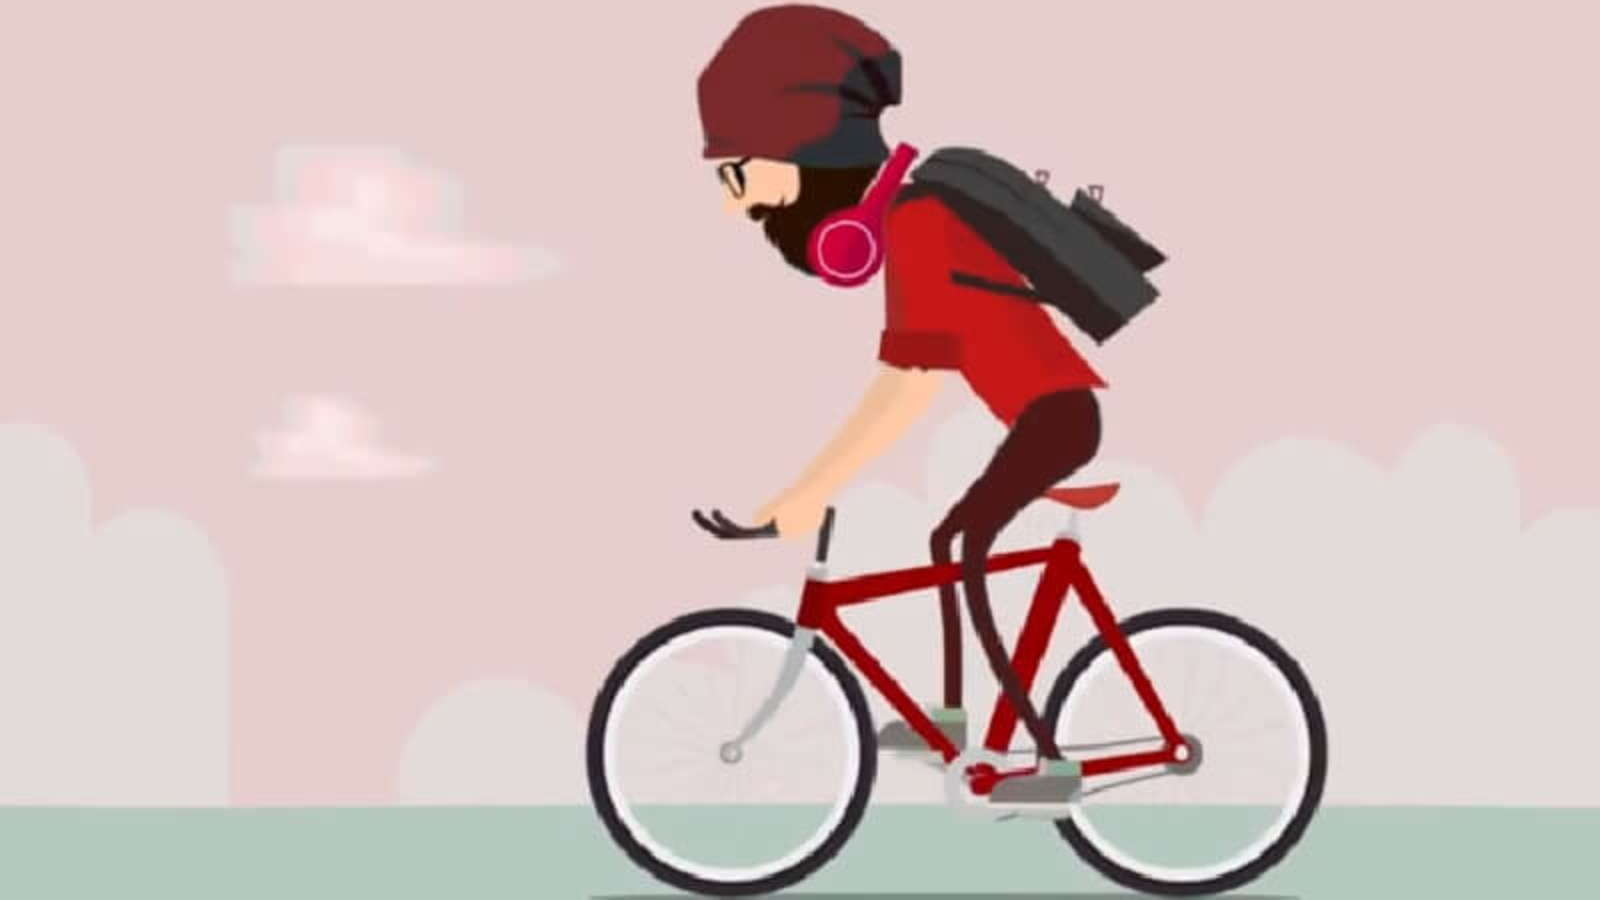 How to Ride a Bicycle